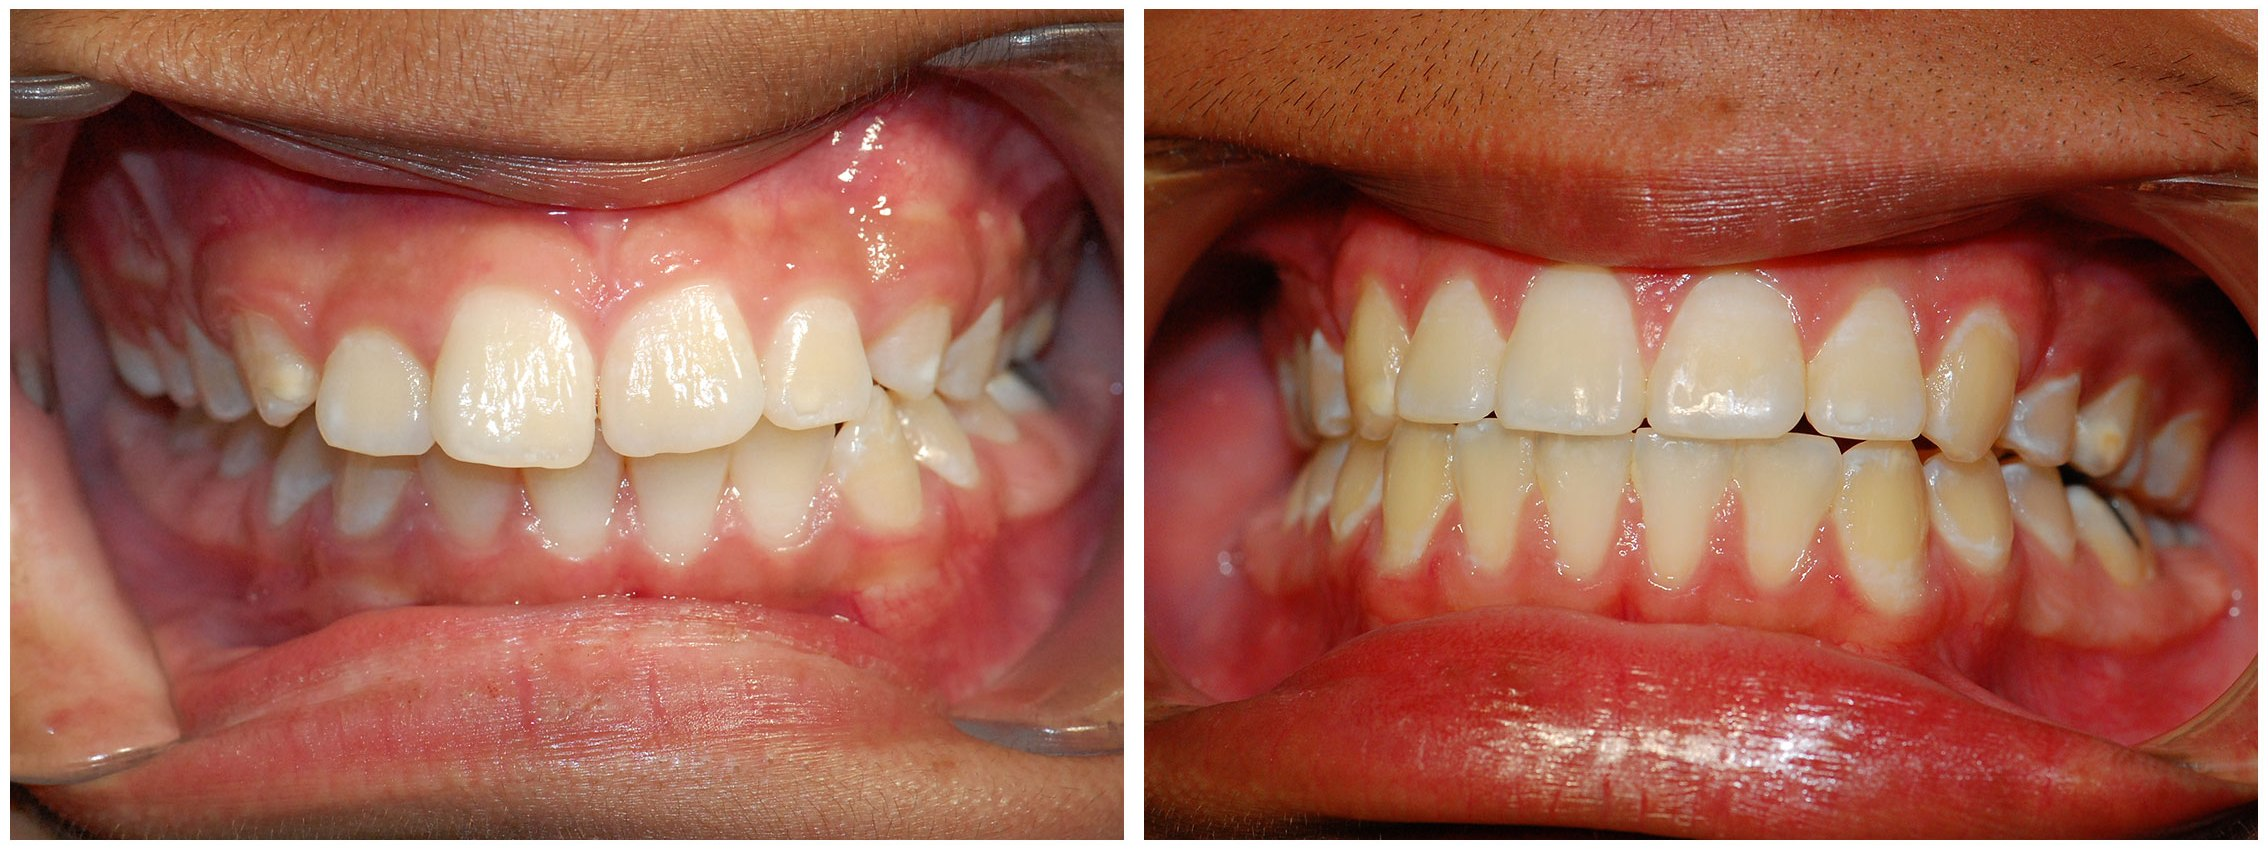 Childrens Dental Braces Treatment Before & After